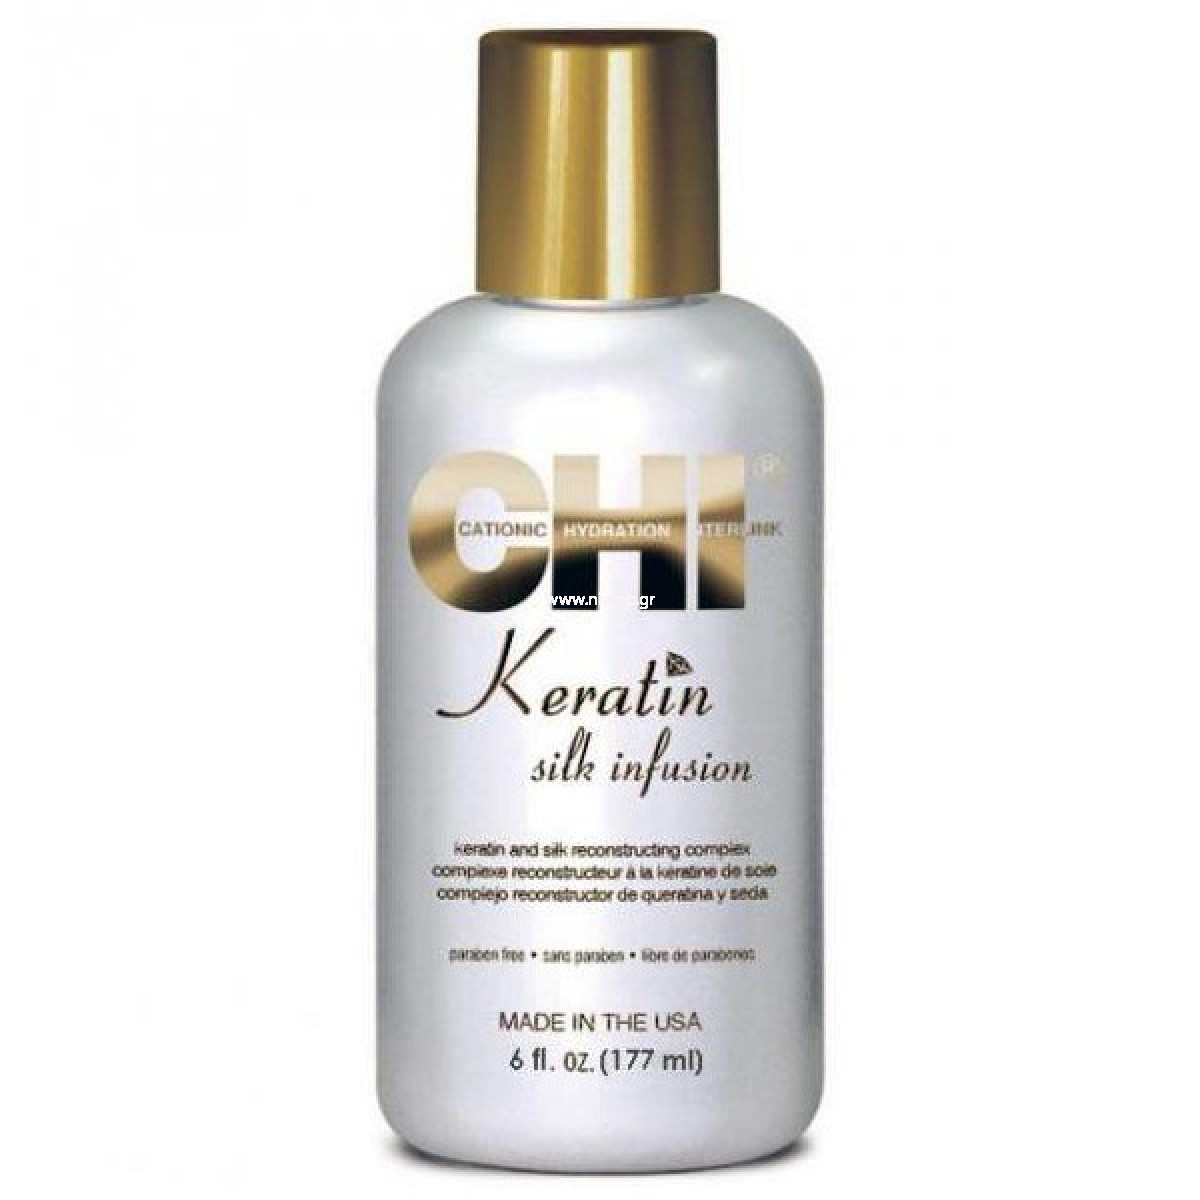 FAROUK CHI Keratin Silk Infusion 177ml by FAROUK  633911728895